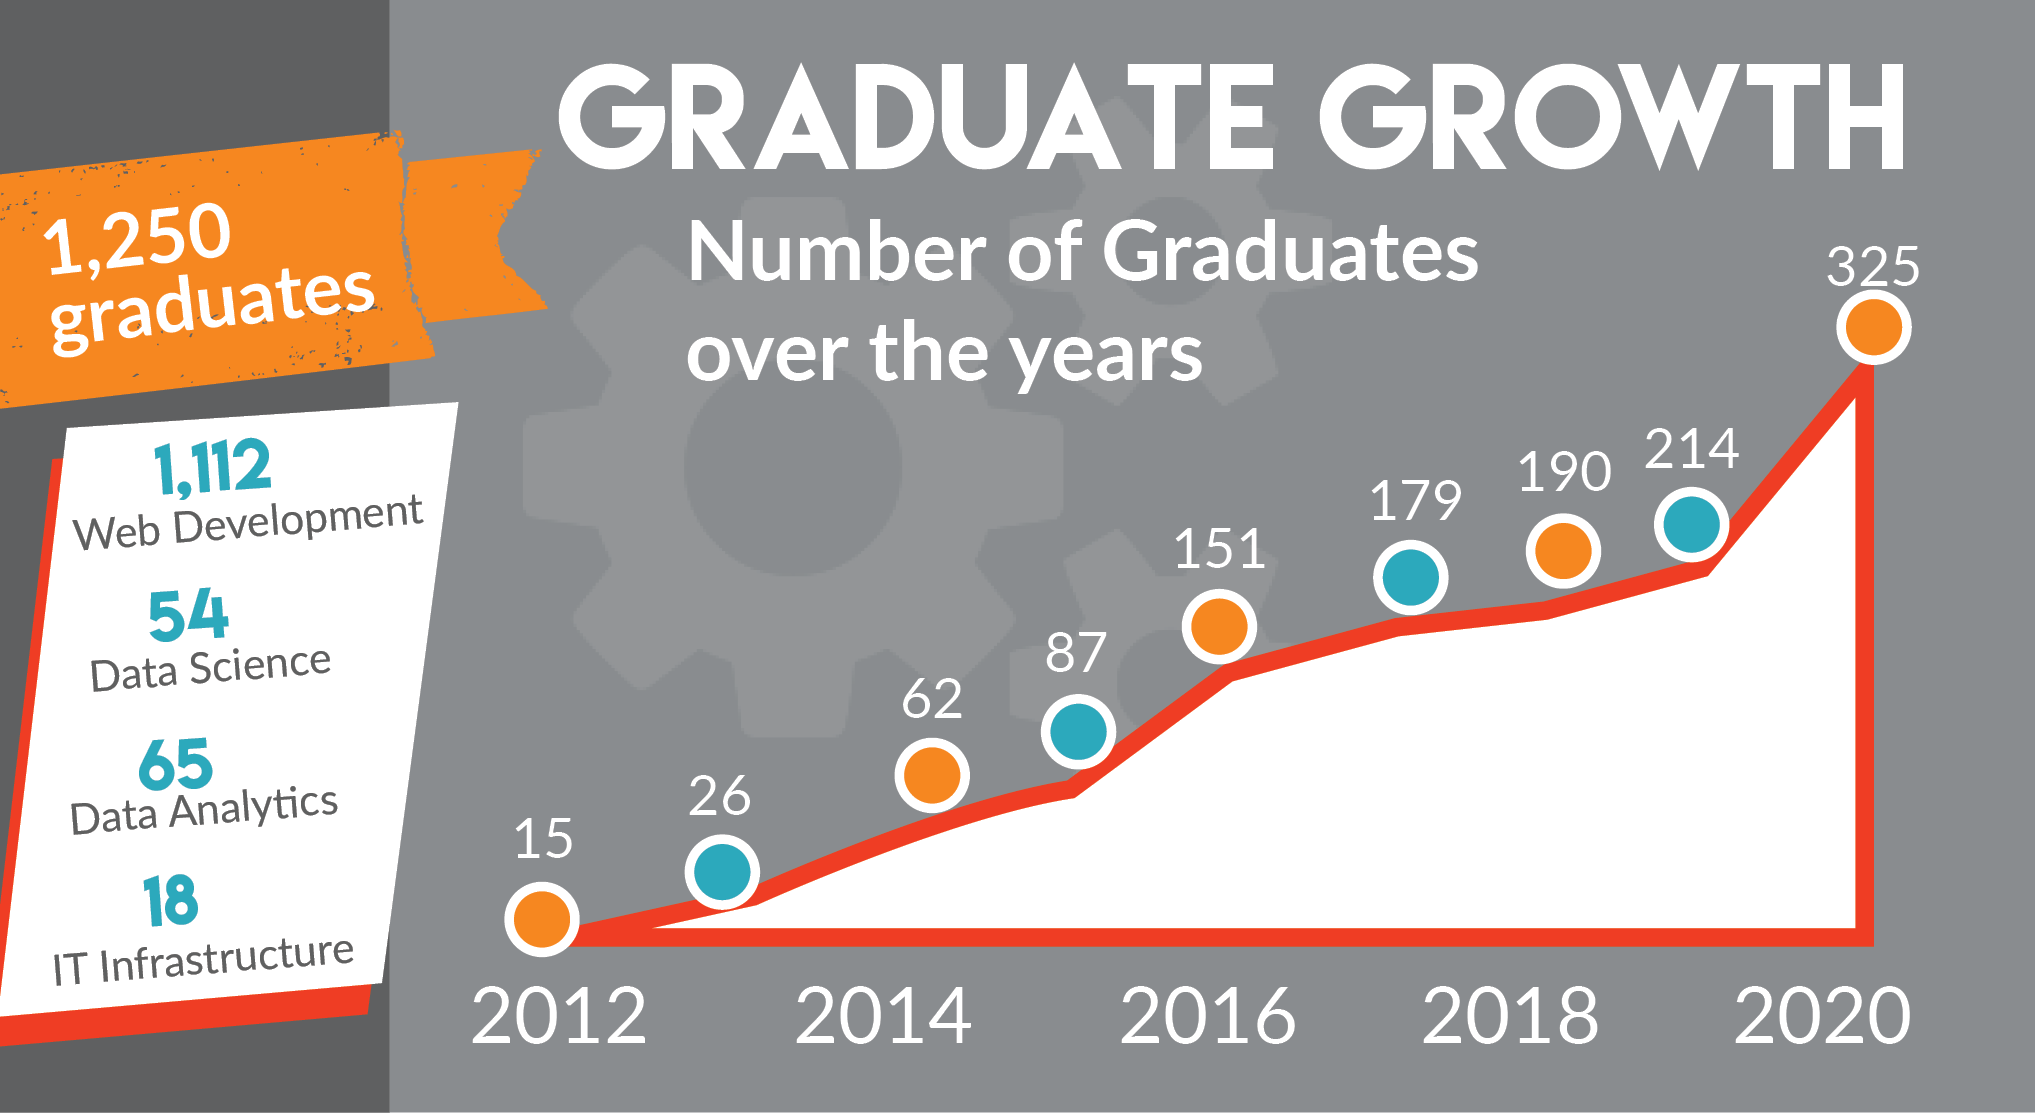 Graduate Growth - from 15 graduates in 2012 to 325 graduates in 2020, NSS has graduated 1250 students